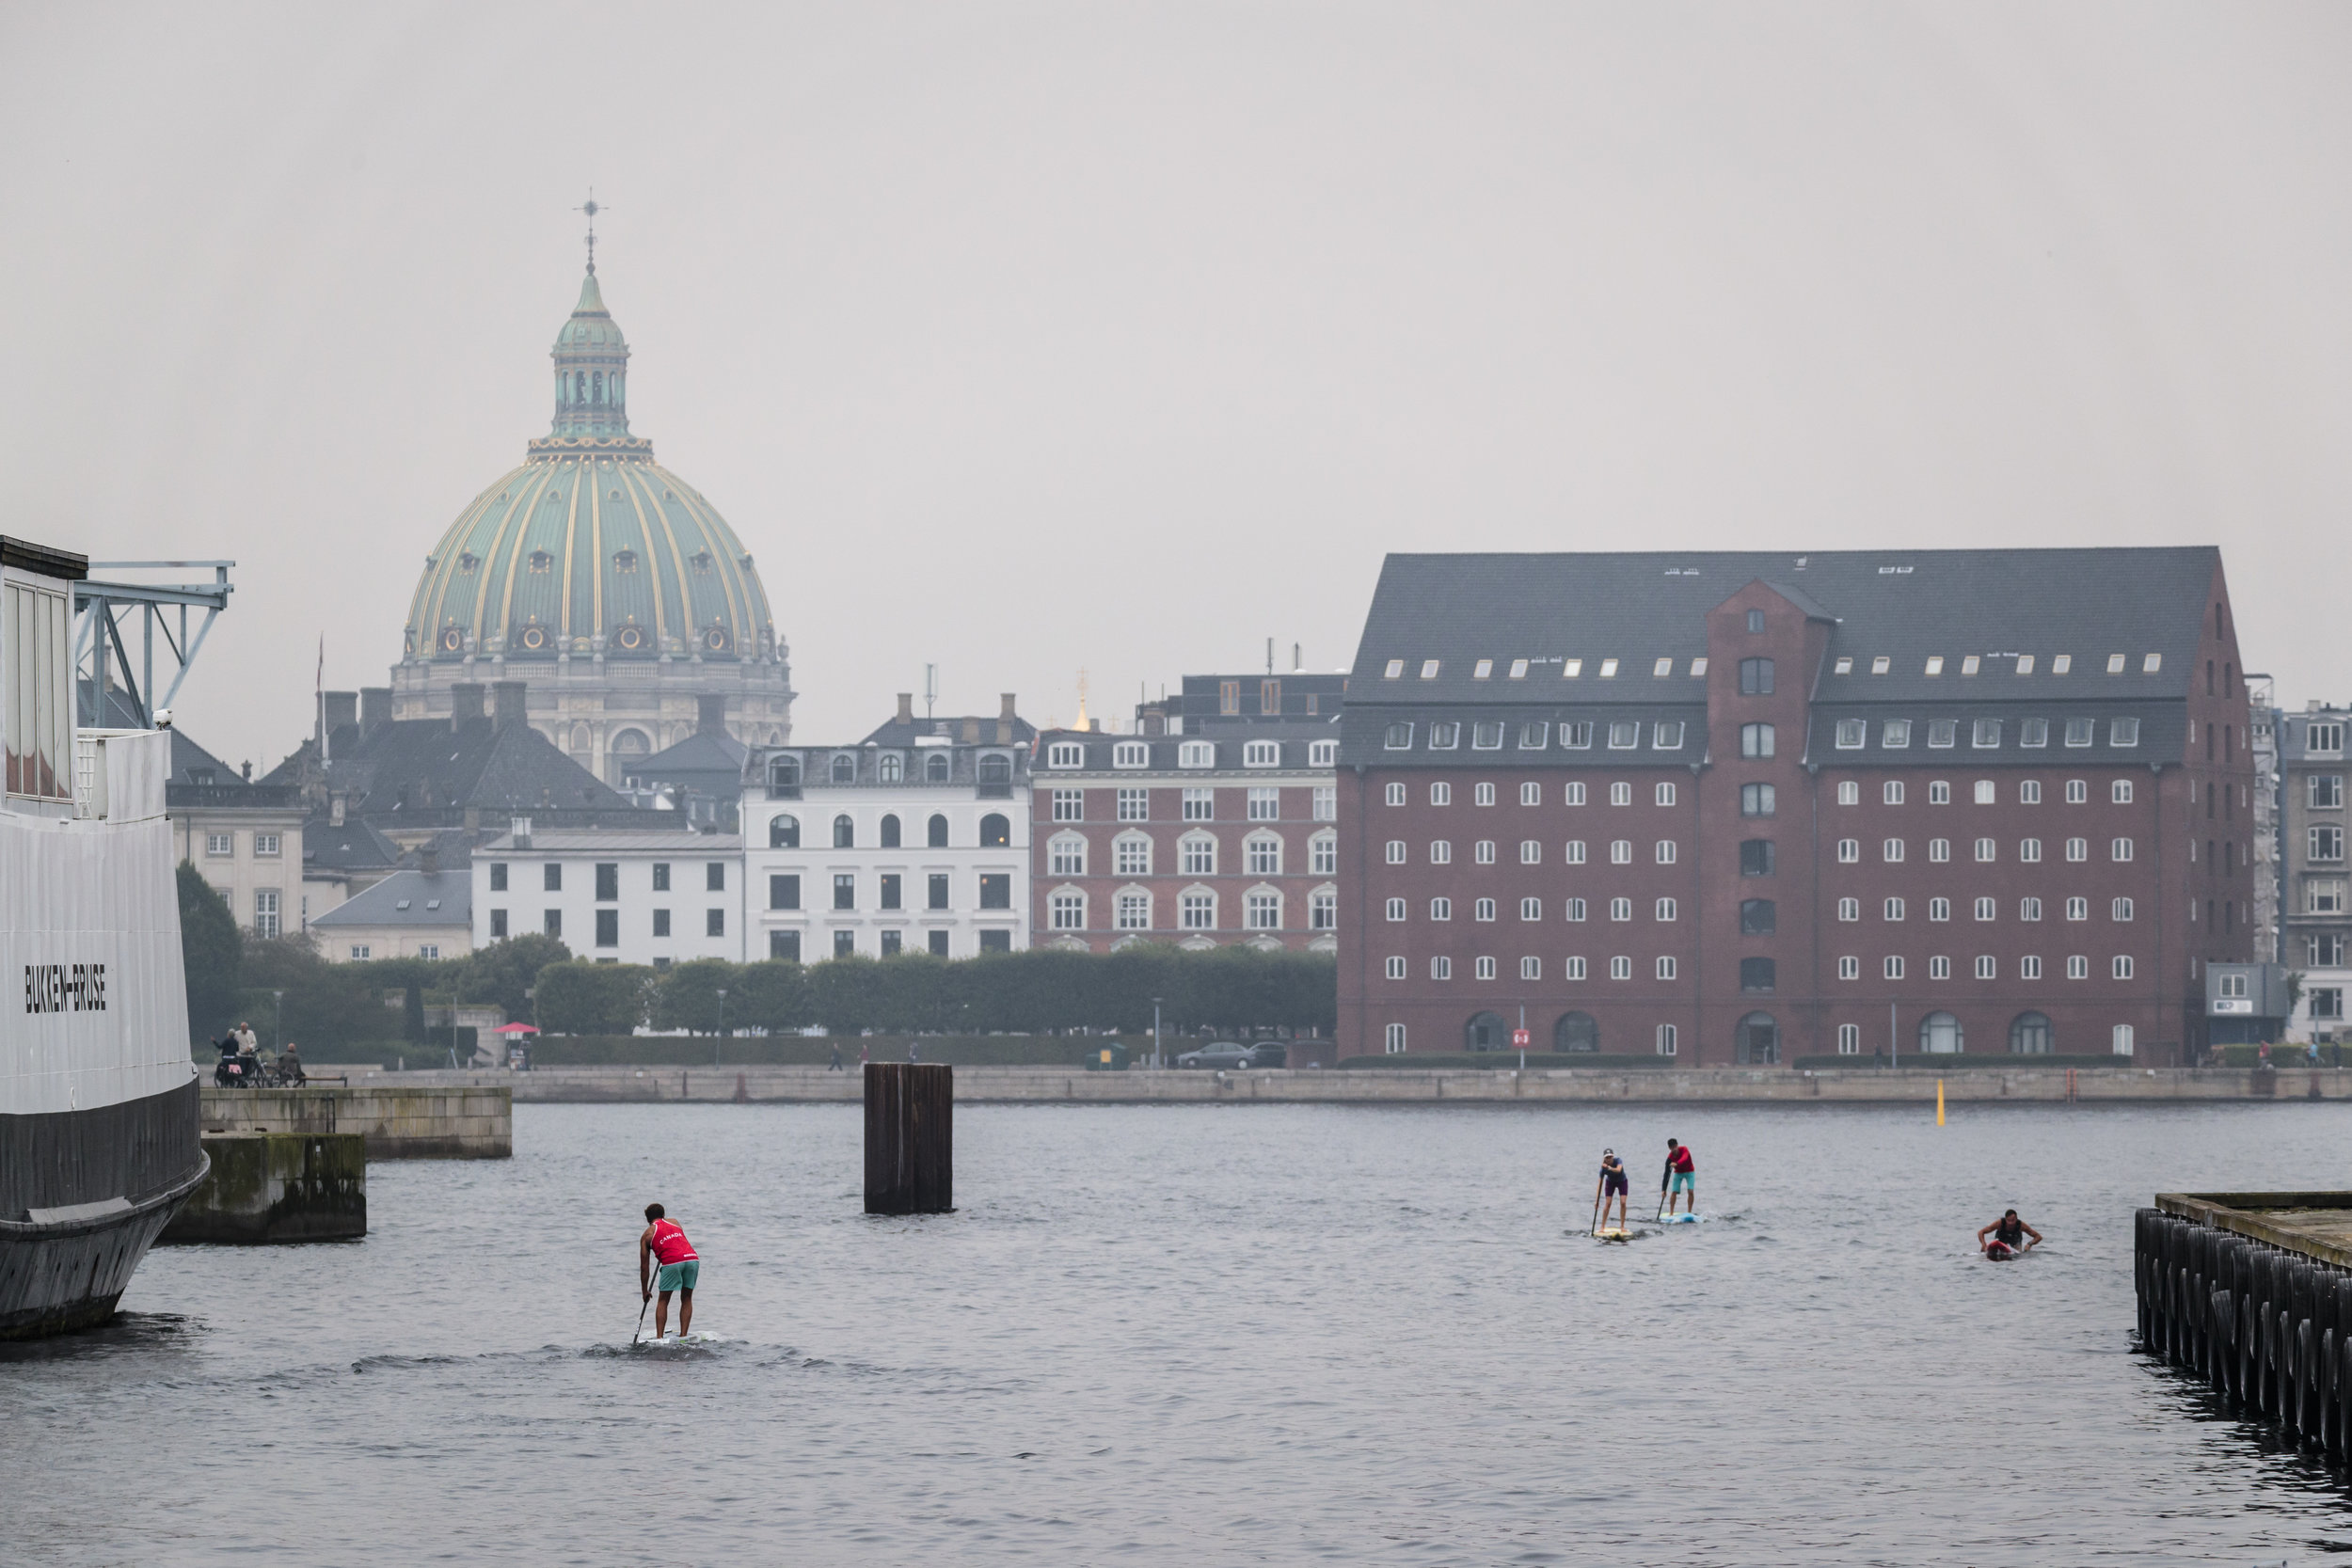 SUP and Paddleboard Racers warm up in Copenhagen Harbor for the Distance and Sprint Races to come on Saturday and Sunday. Photo: ISA / Ben Reed